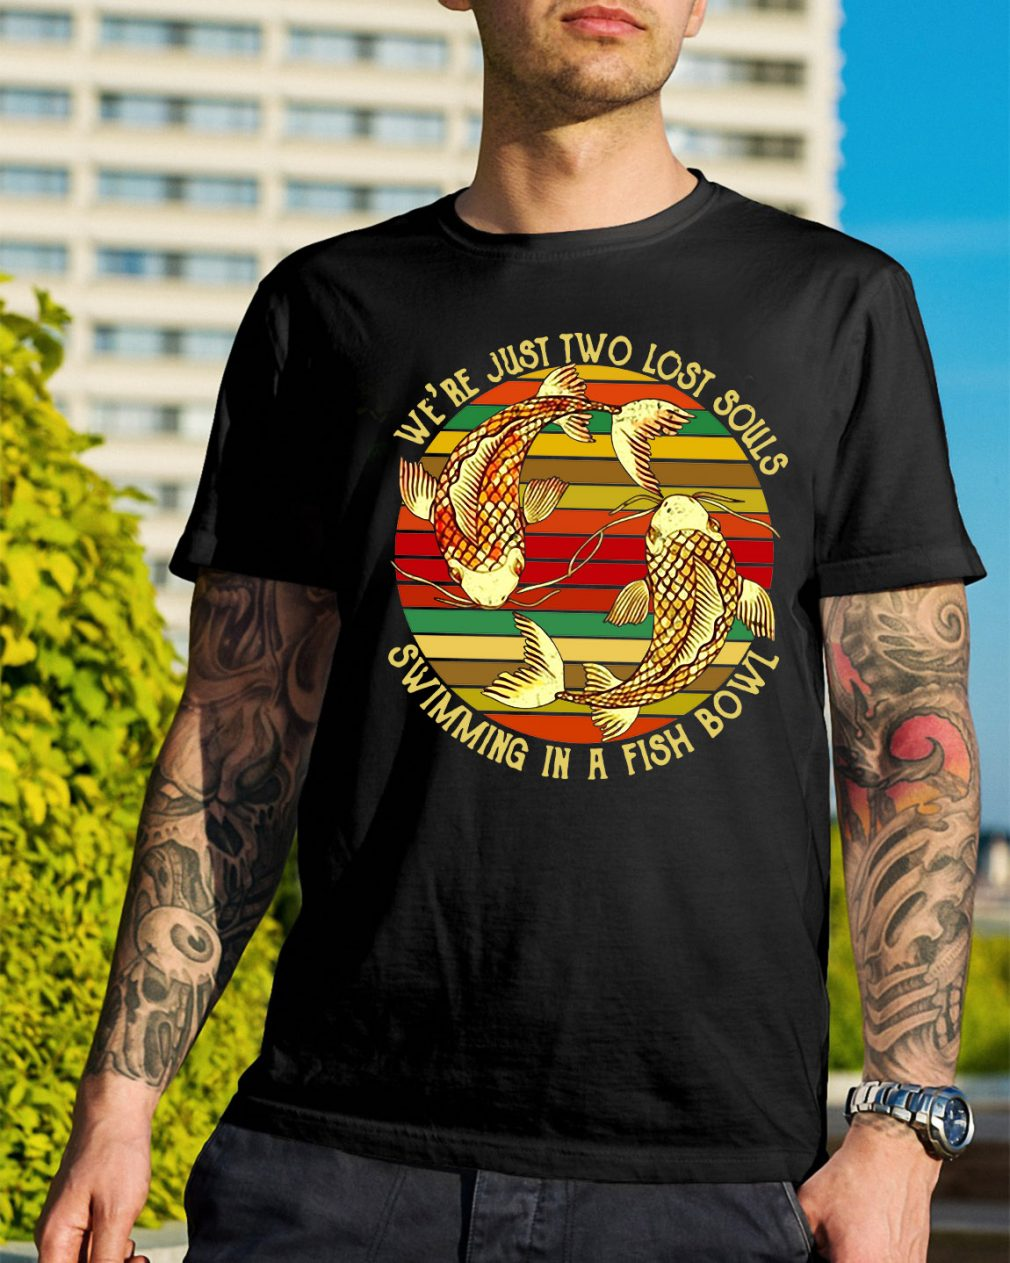 Koi we're just two lost souls swimming in a fish bowl vintage shirt